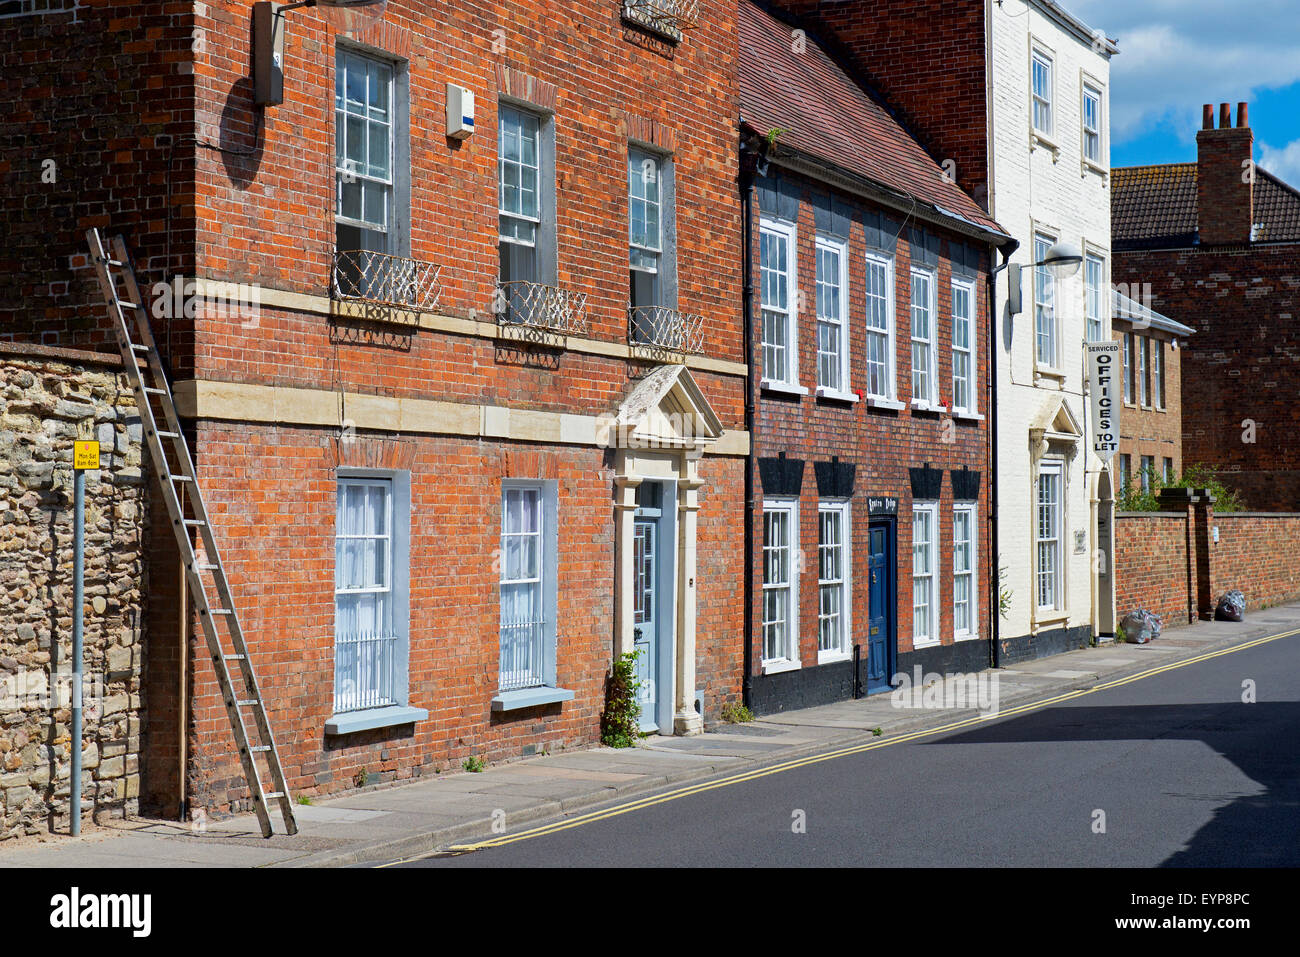 Offices to let: Georgian architecture in Taunton, Somerset, England UK - Stock Image